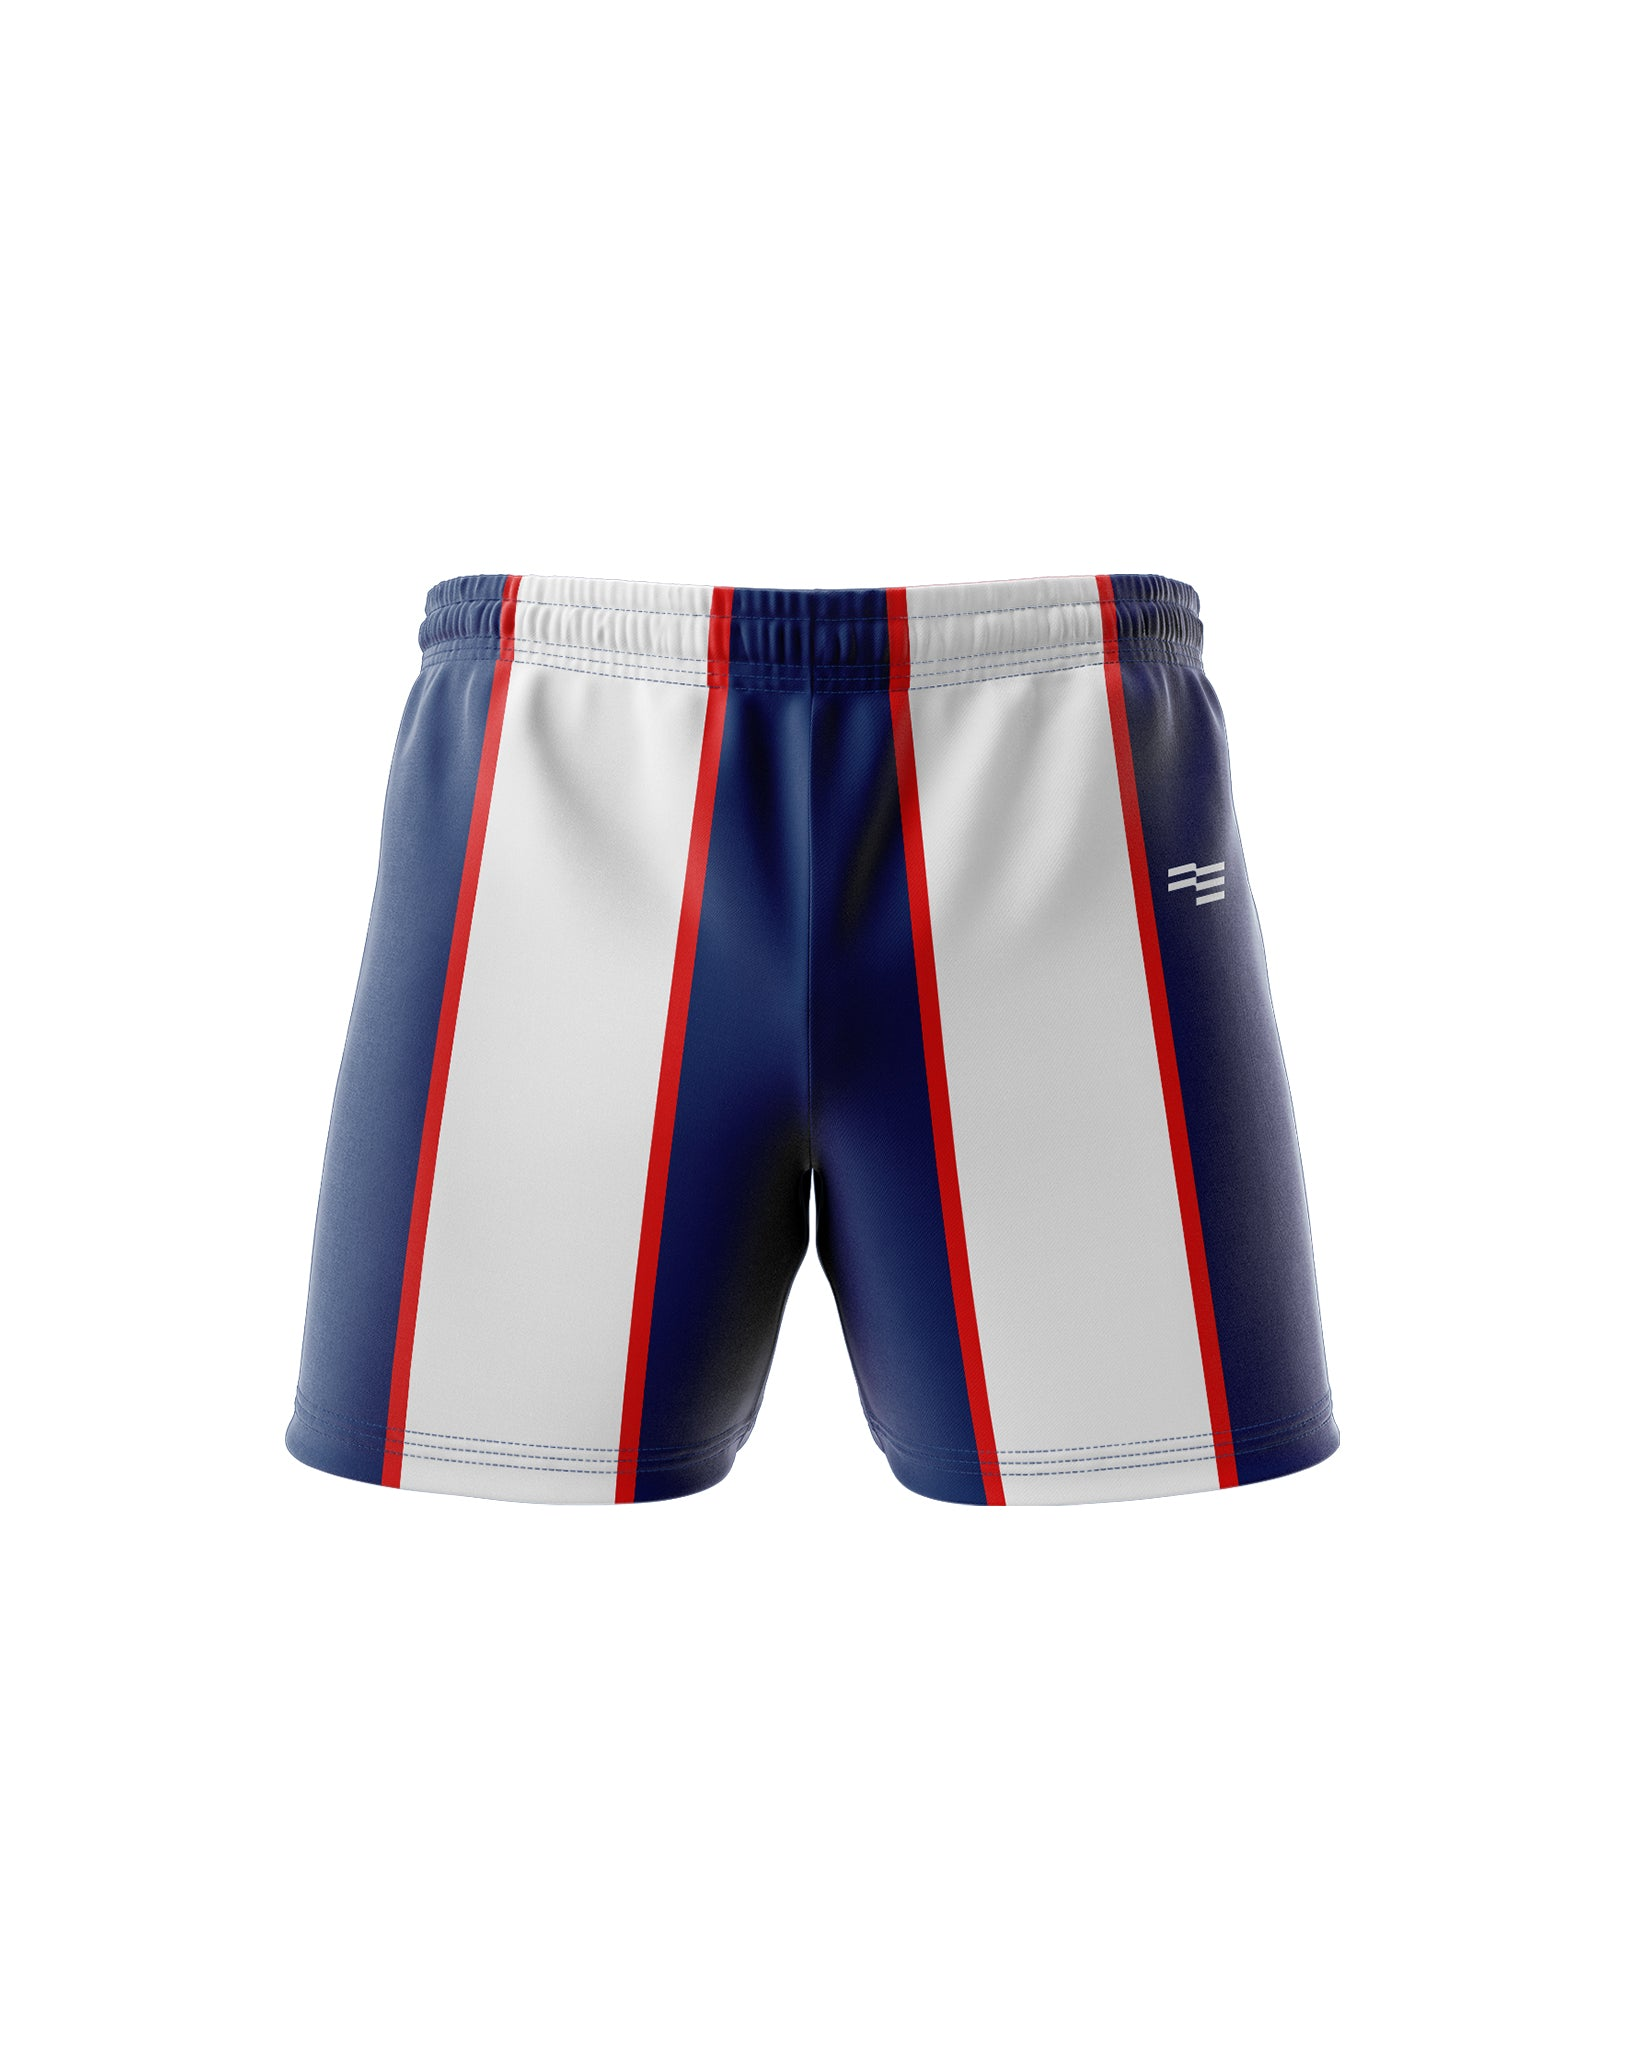 Knights Rugby Shorts - Mens